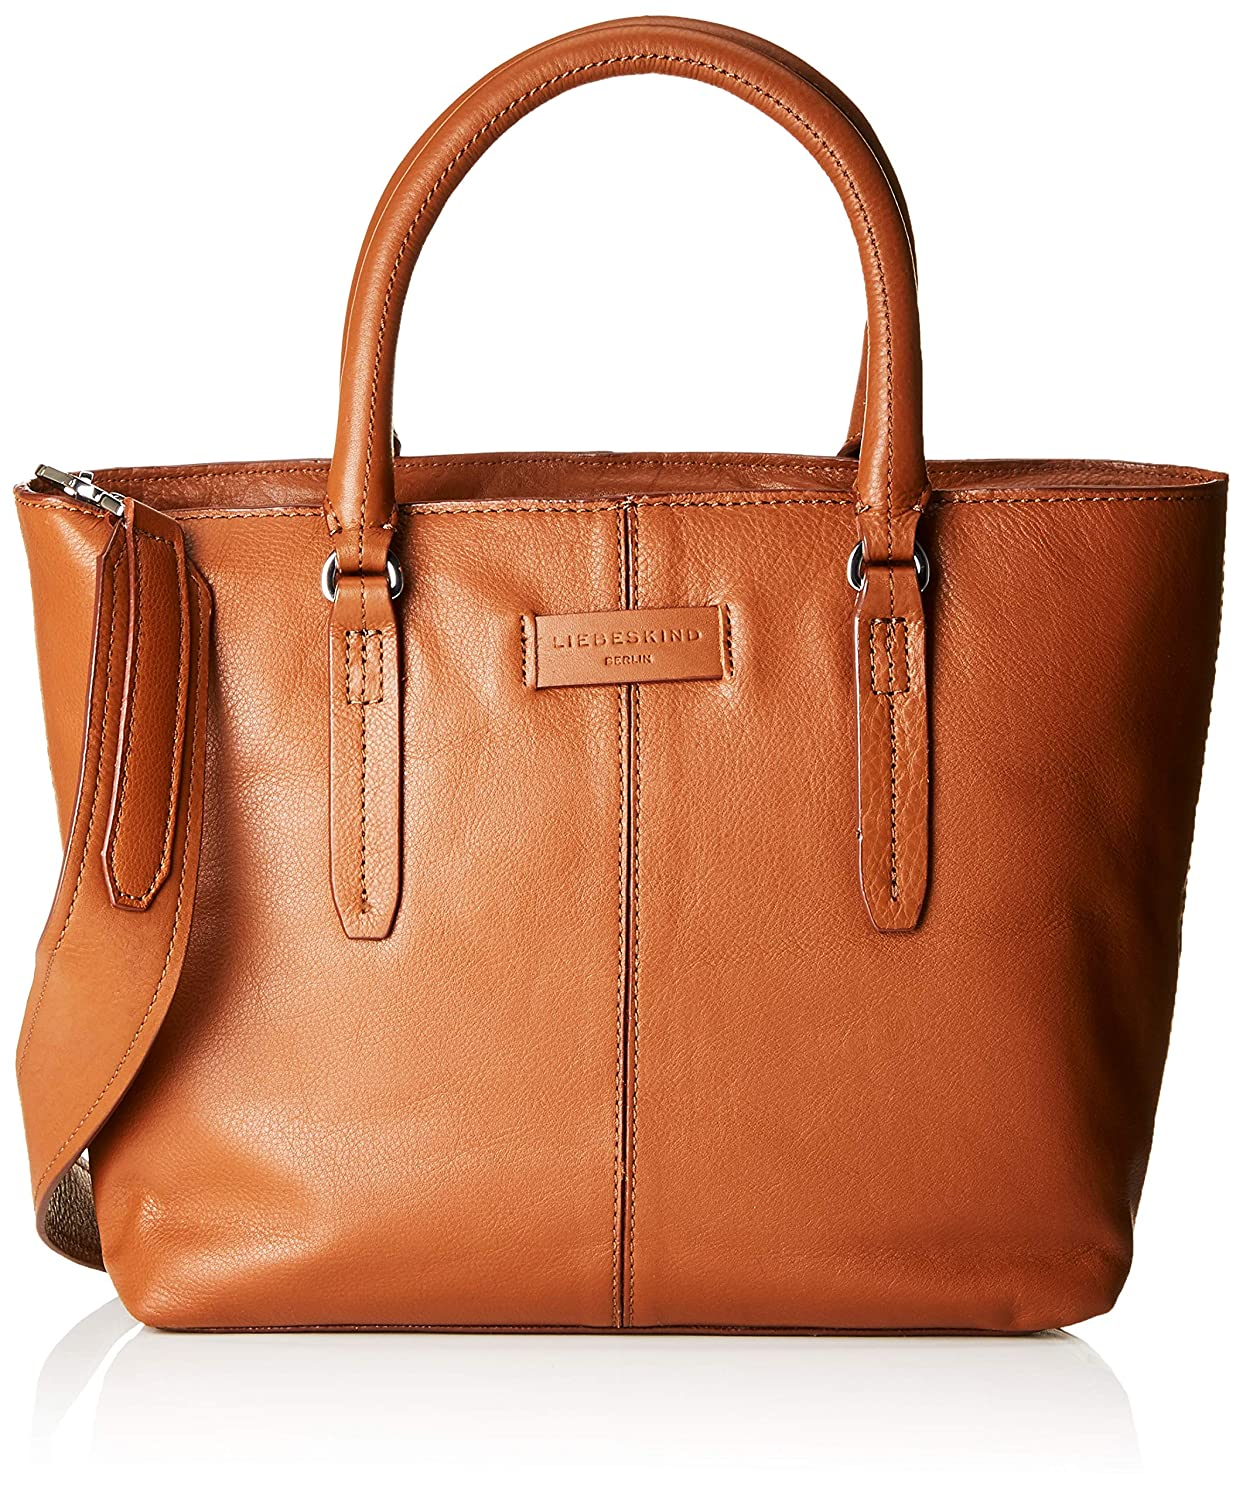 Brown (Bourbon) Liebeskind Berlin Women's Essential Satchel Medium Satchel